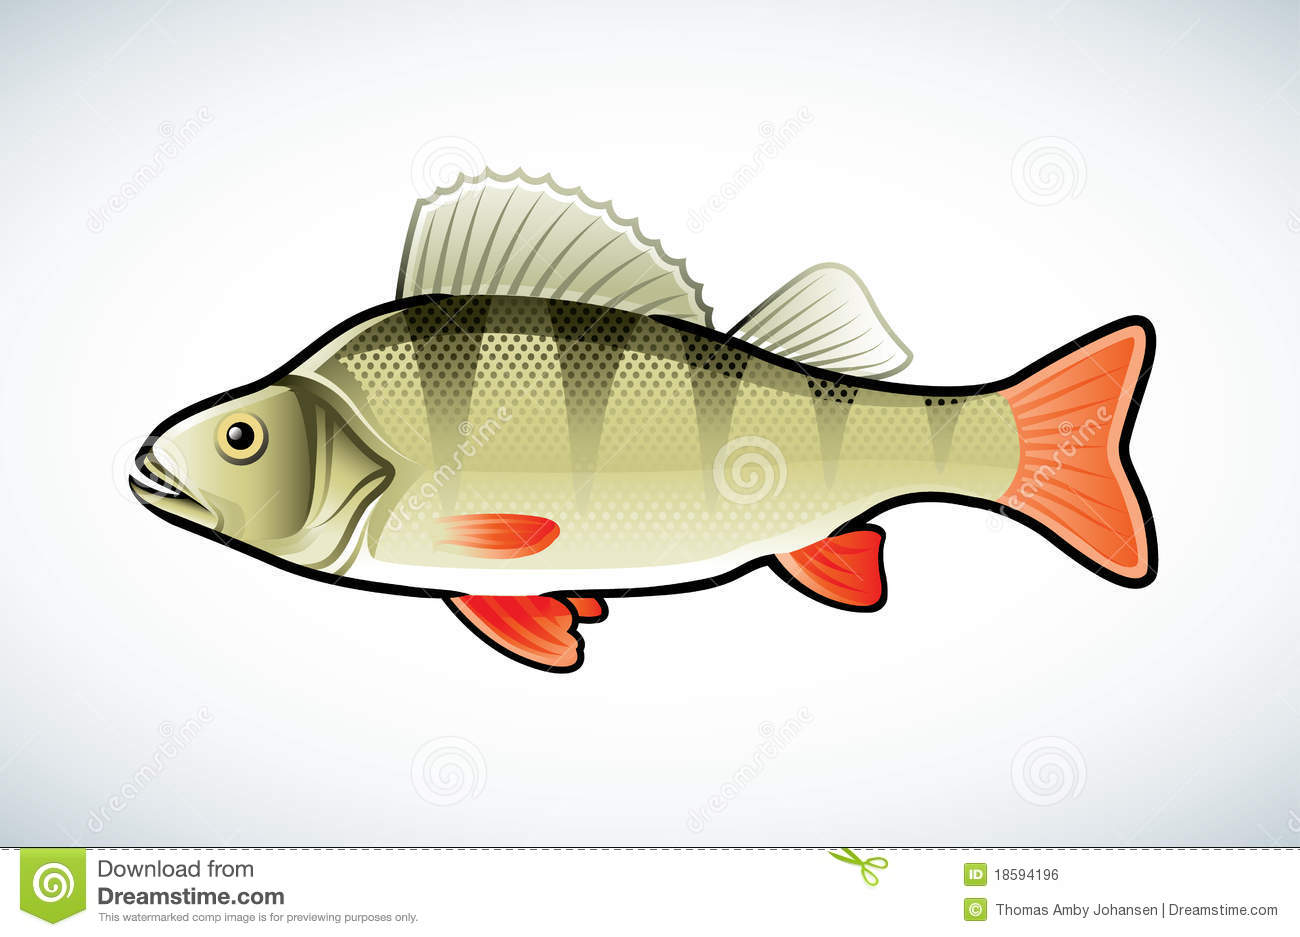 Perch Illustration Royalty Free Stock Image.